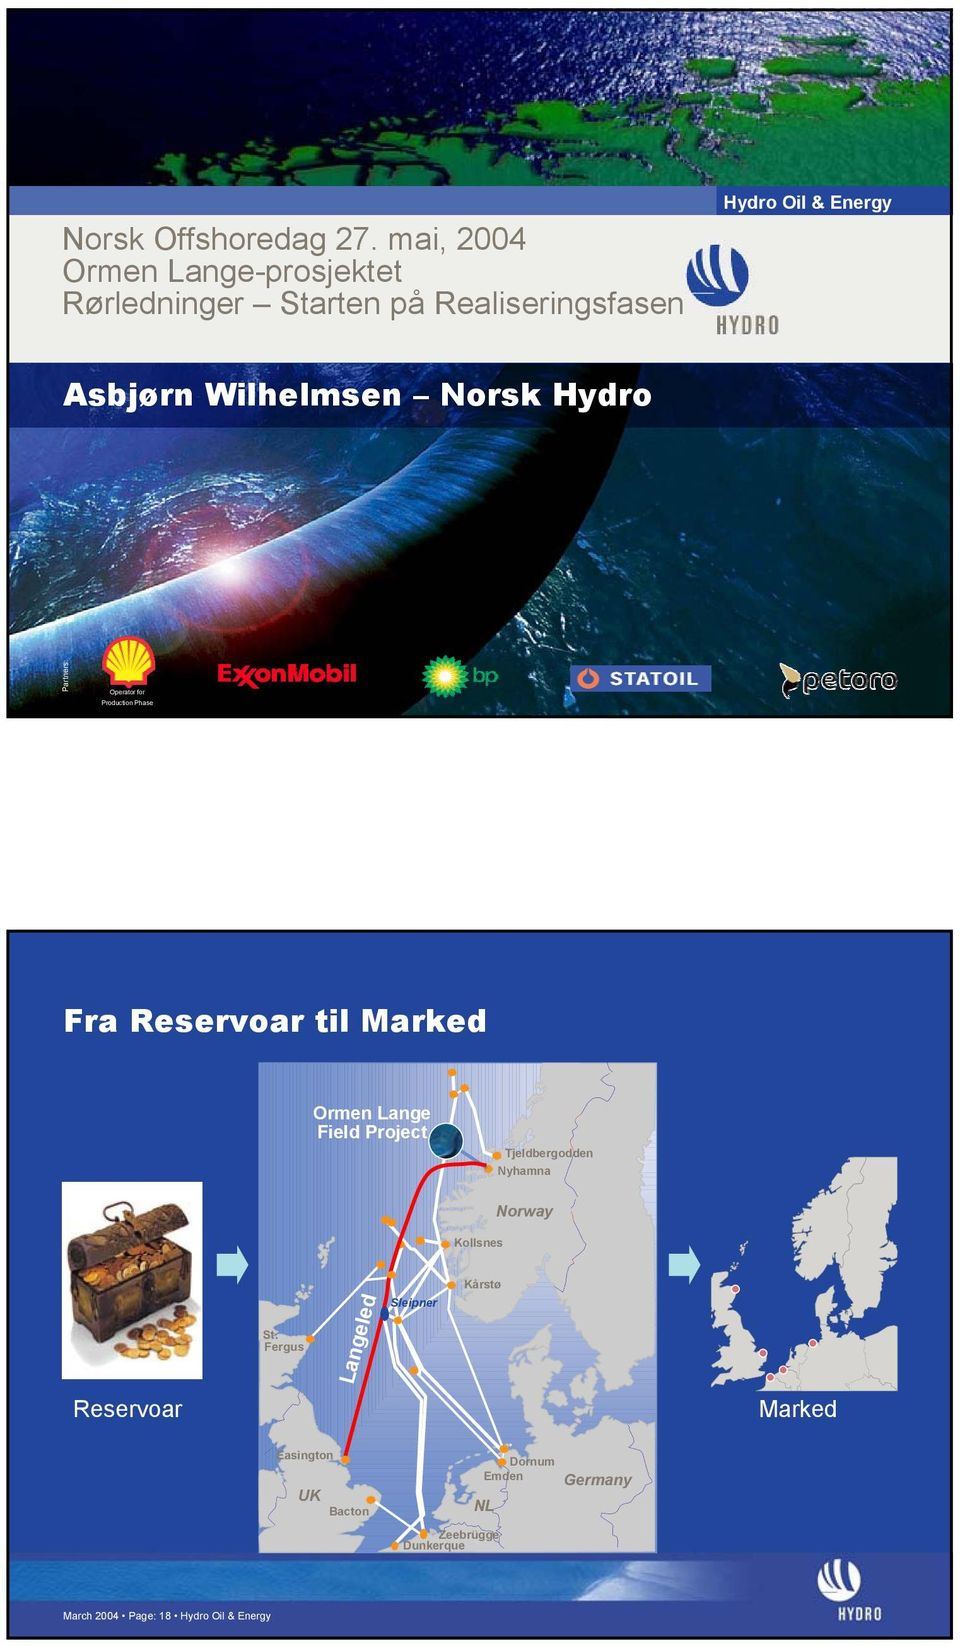 Wilhelmsen Norsk Hydro Partners: Operator for Production Phase Fra Reservoar til Marked Ormen Lange Field